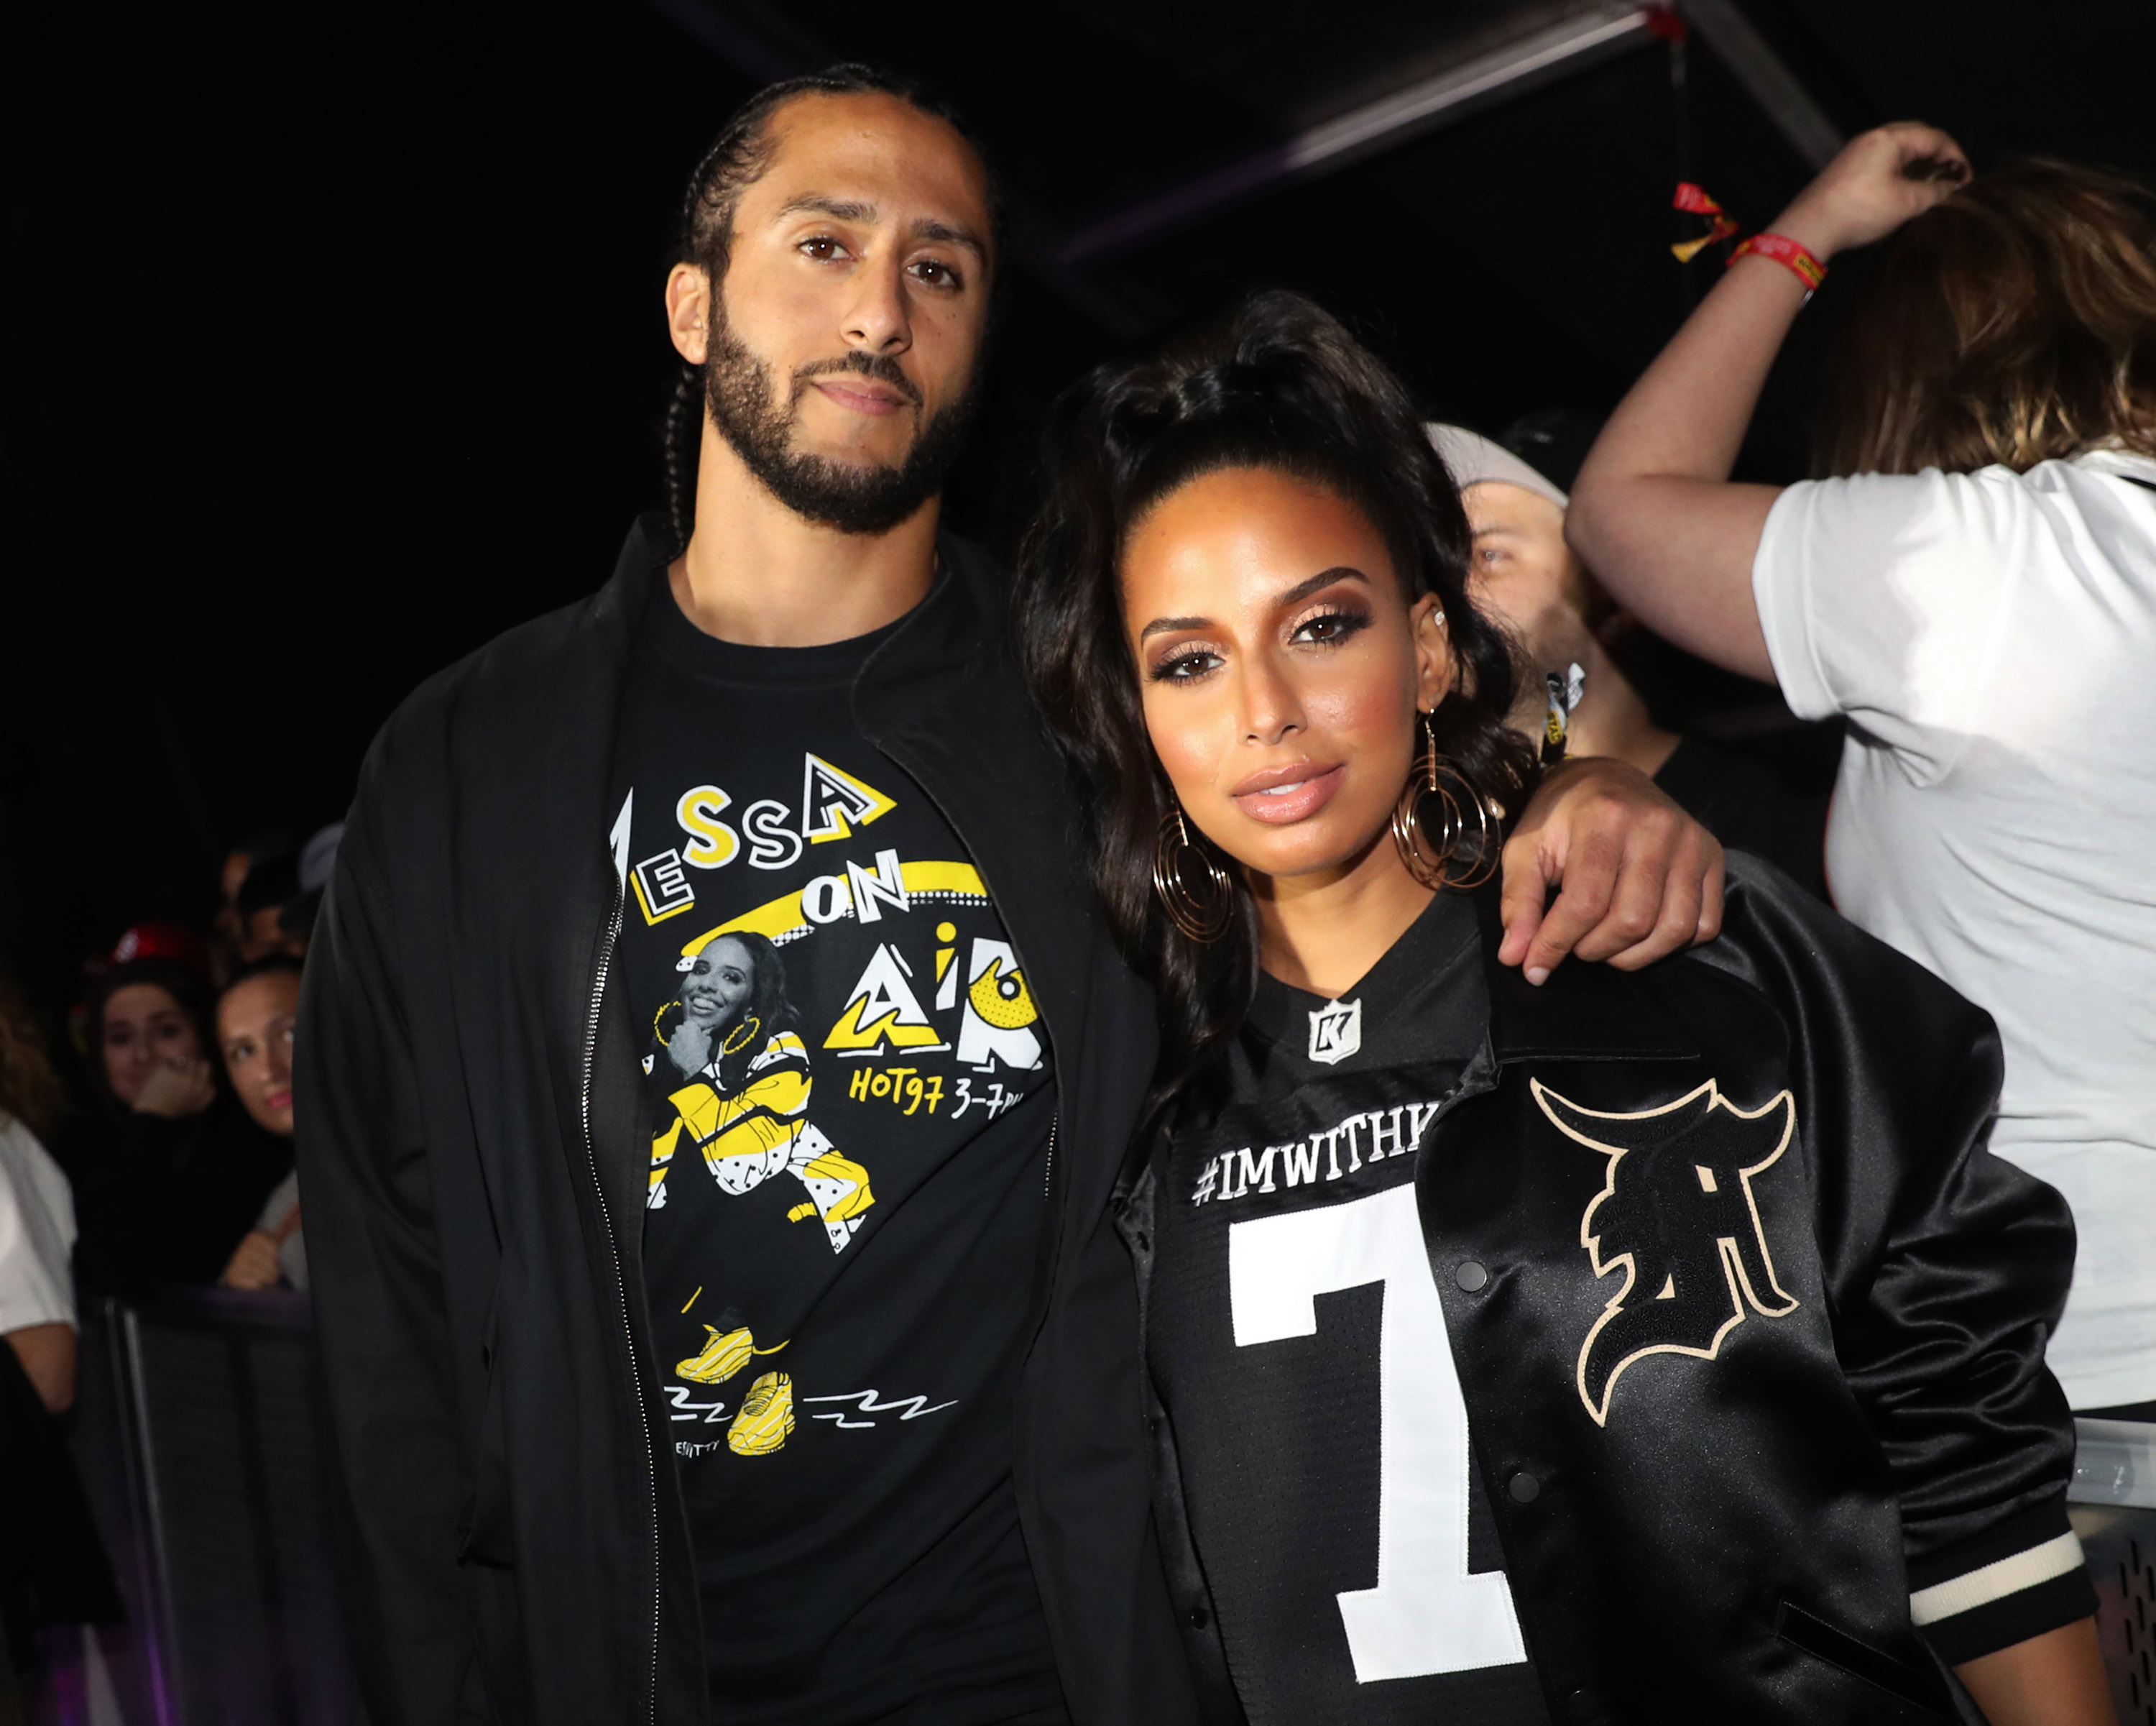 Former NFL player Colin Kaepernick and Nessa